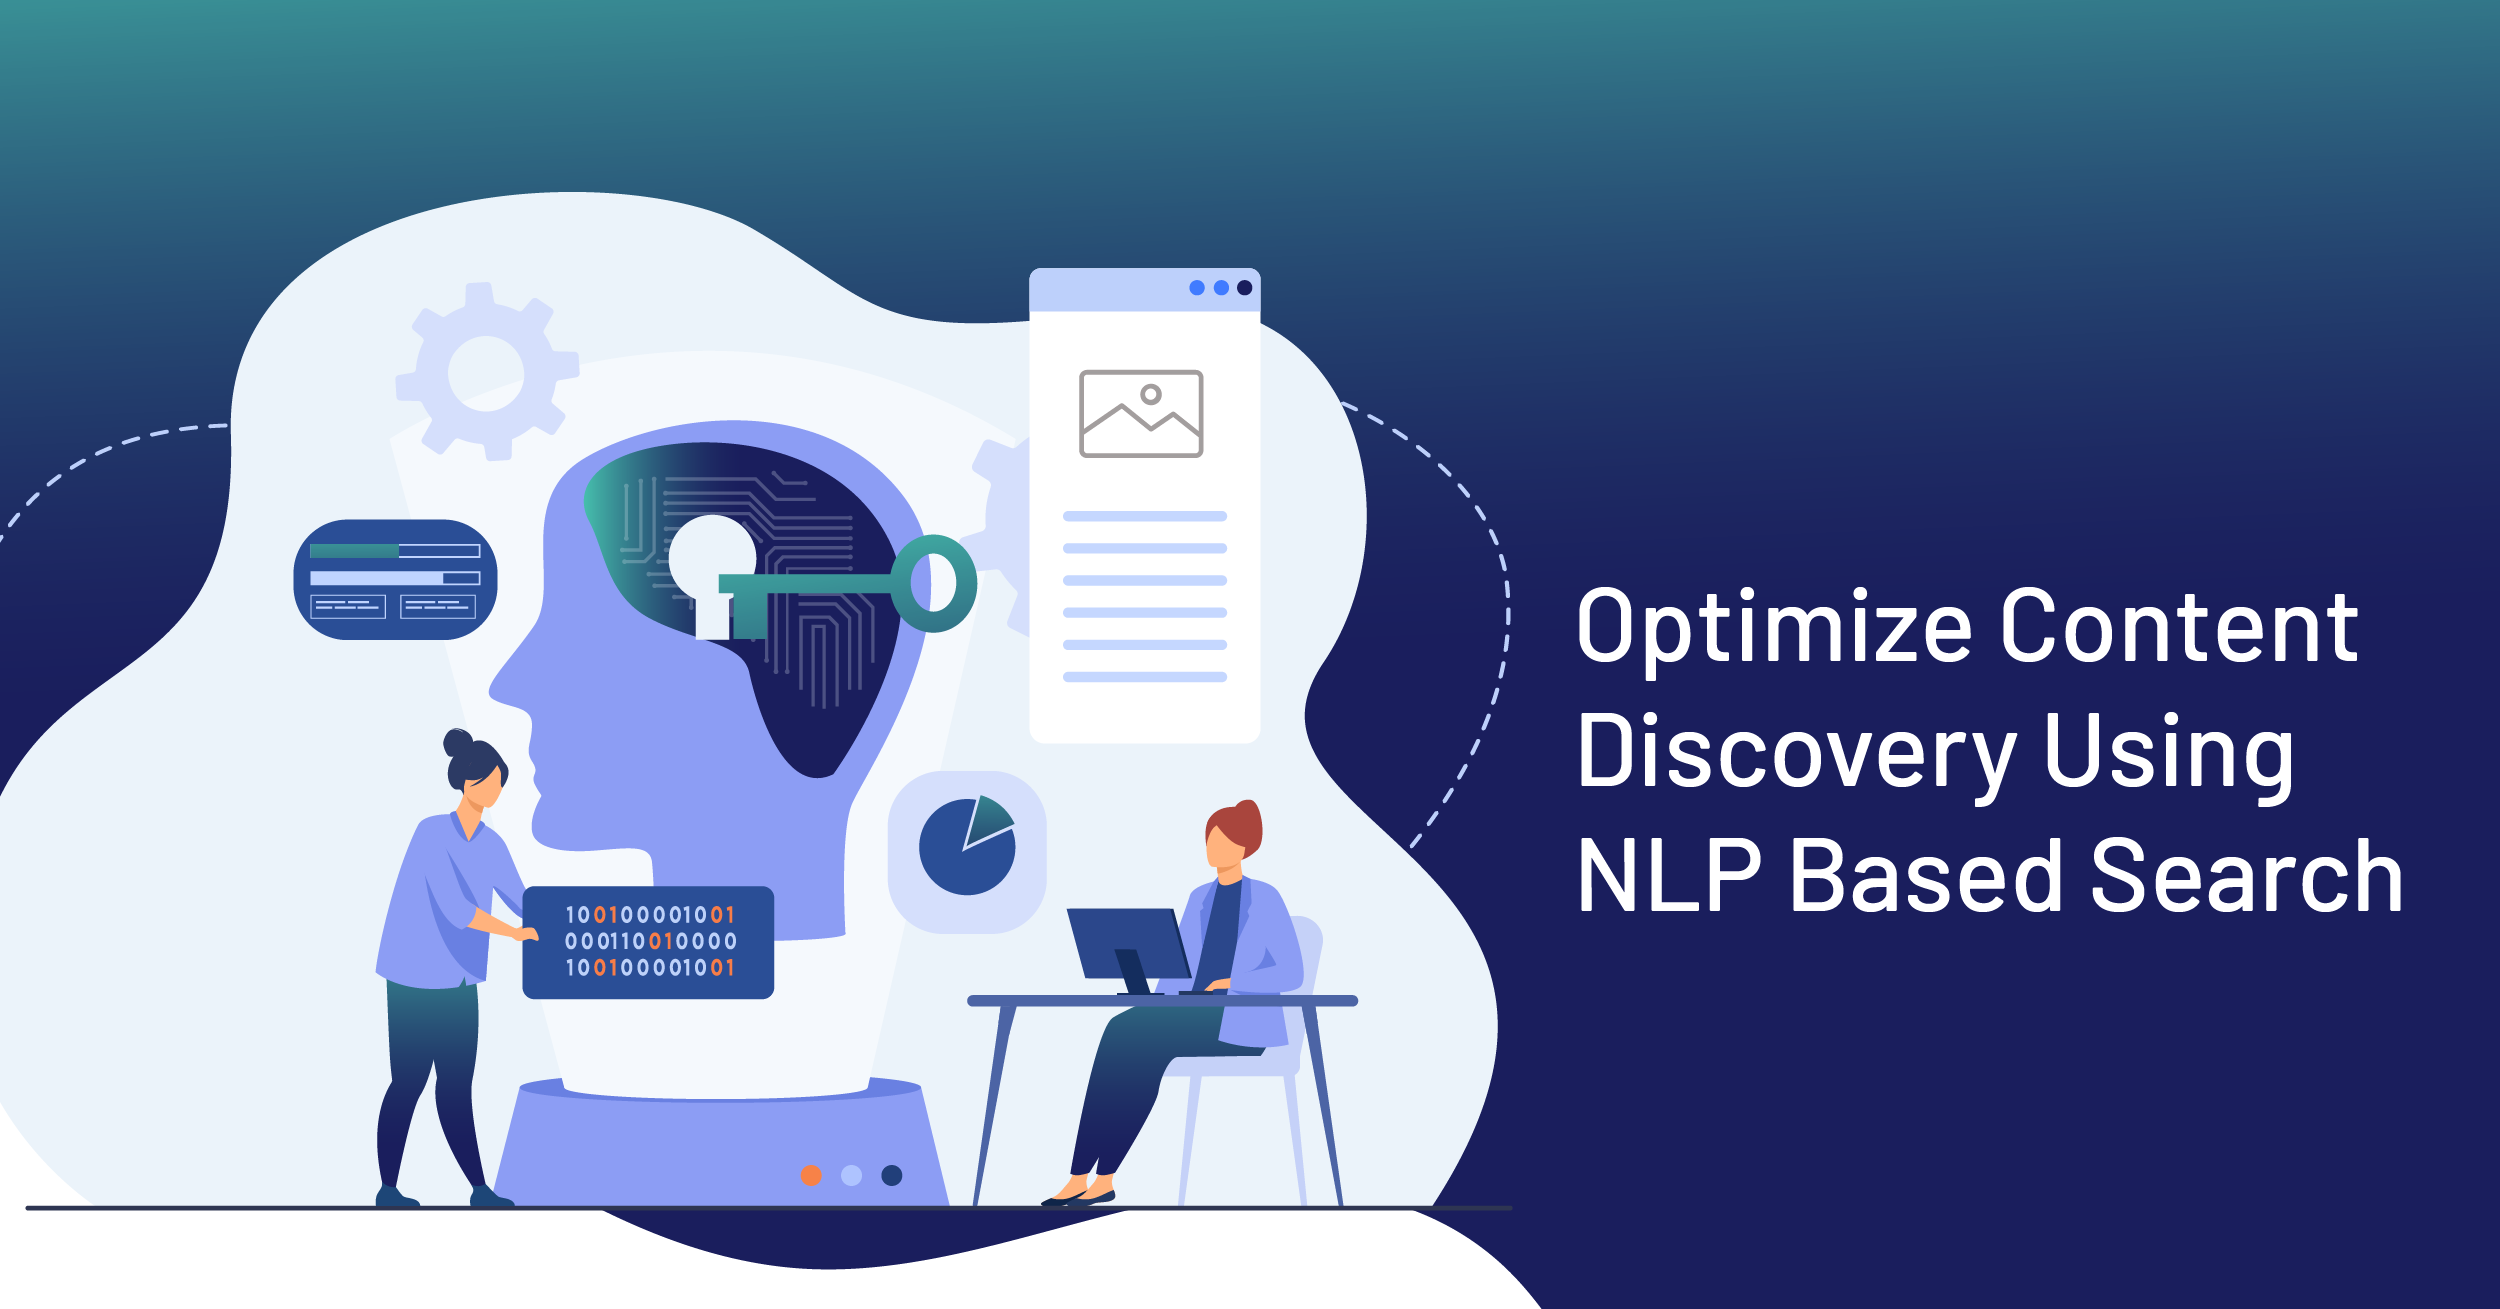 Optimize Content Discovery Using NLP Based Search